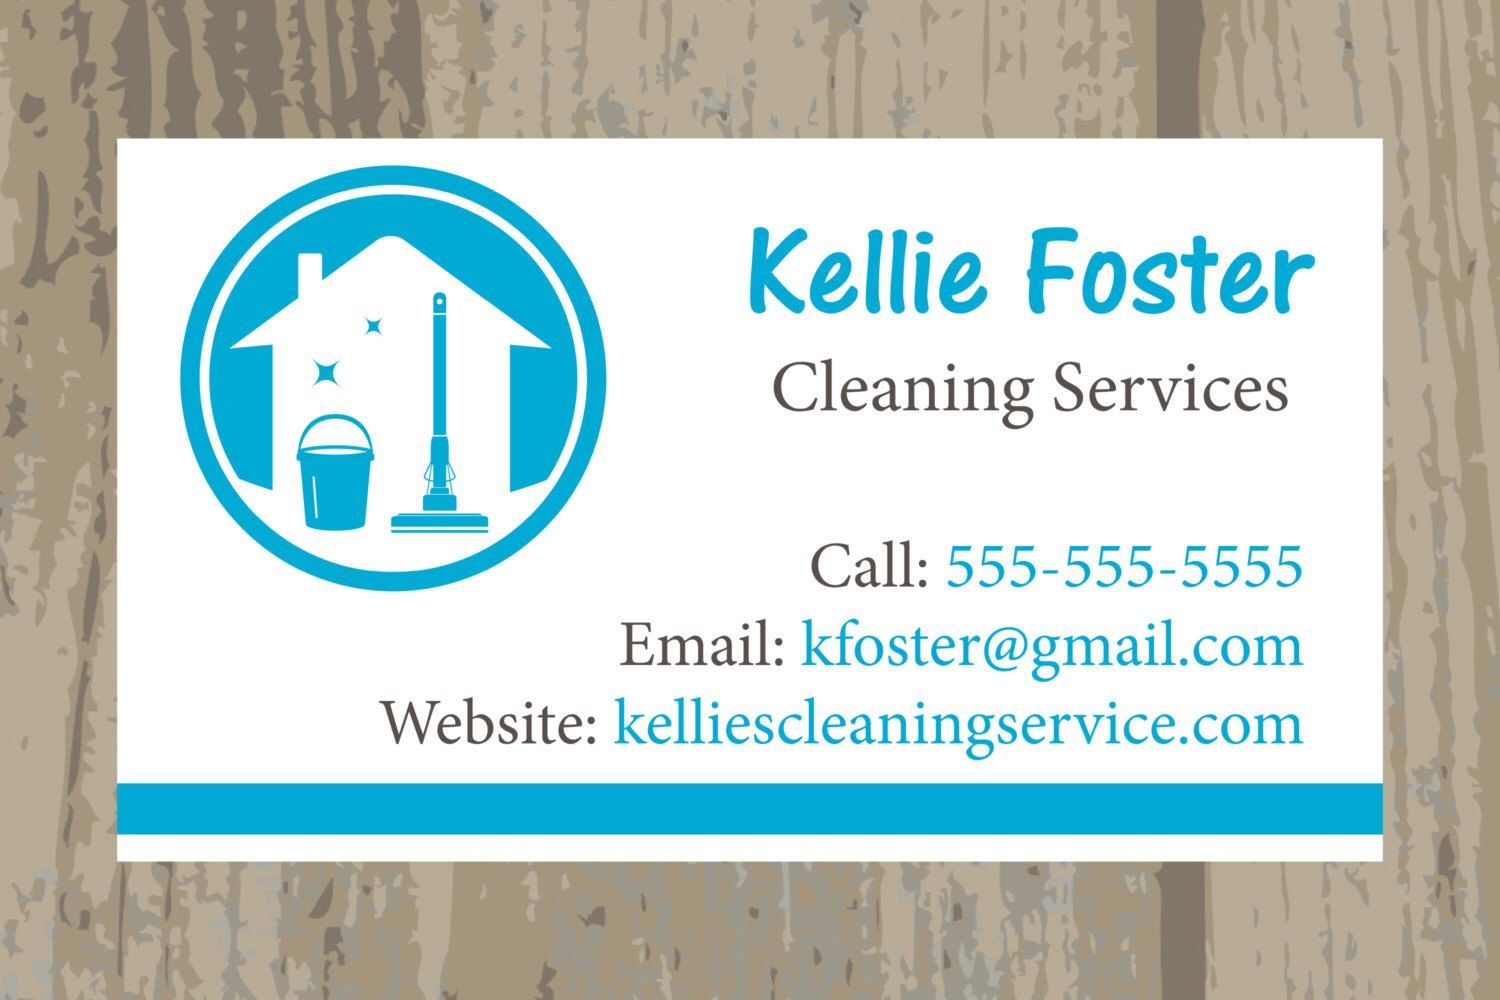 Cleaning service business cards housekeeping business digital cleaning service business cards housekeeping business digital file or printed business cards custom business card cleaning lady magicingreecefo Images